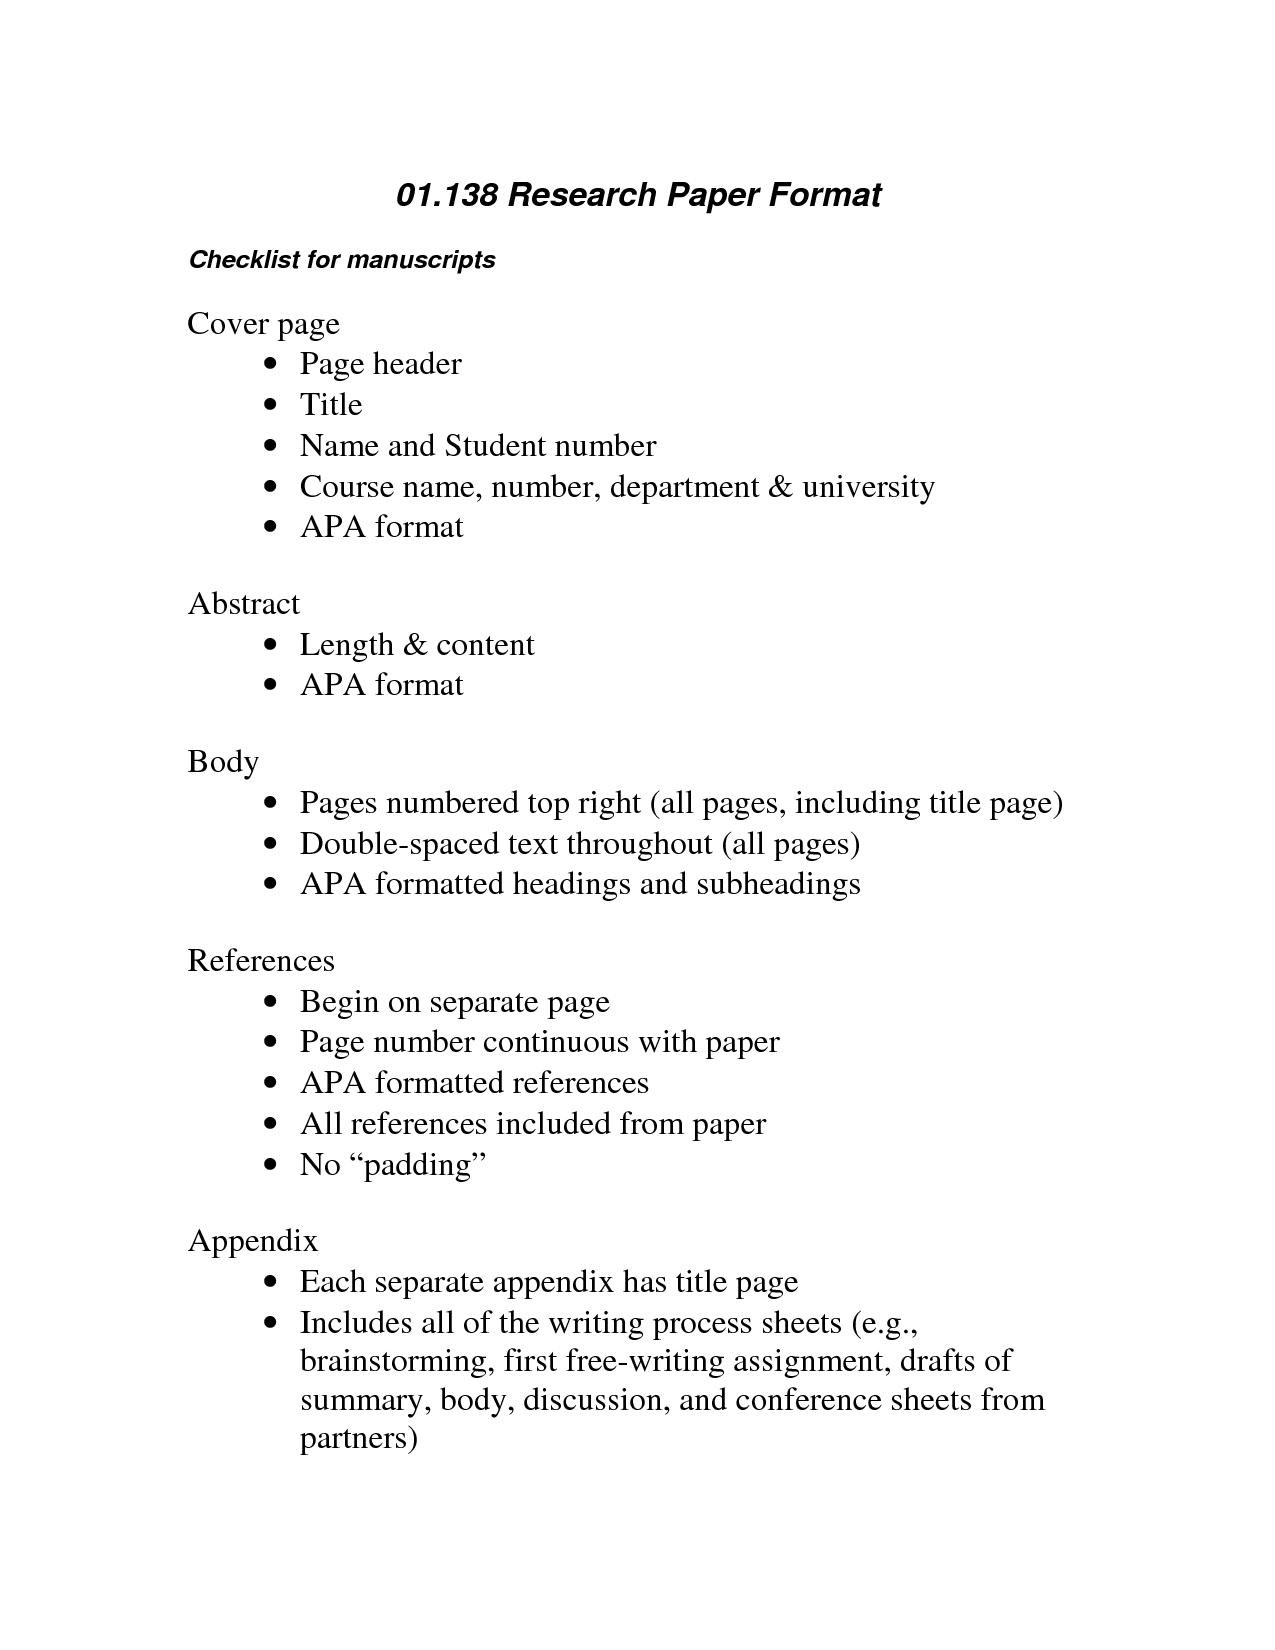 004 Outlines For Researchs Apa Awful Research Papers Outline Paper Style Examples Sample Full